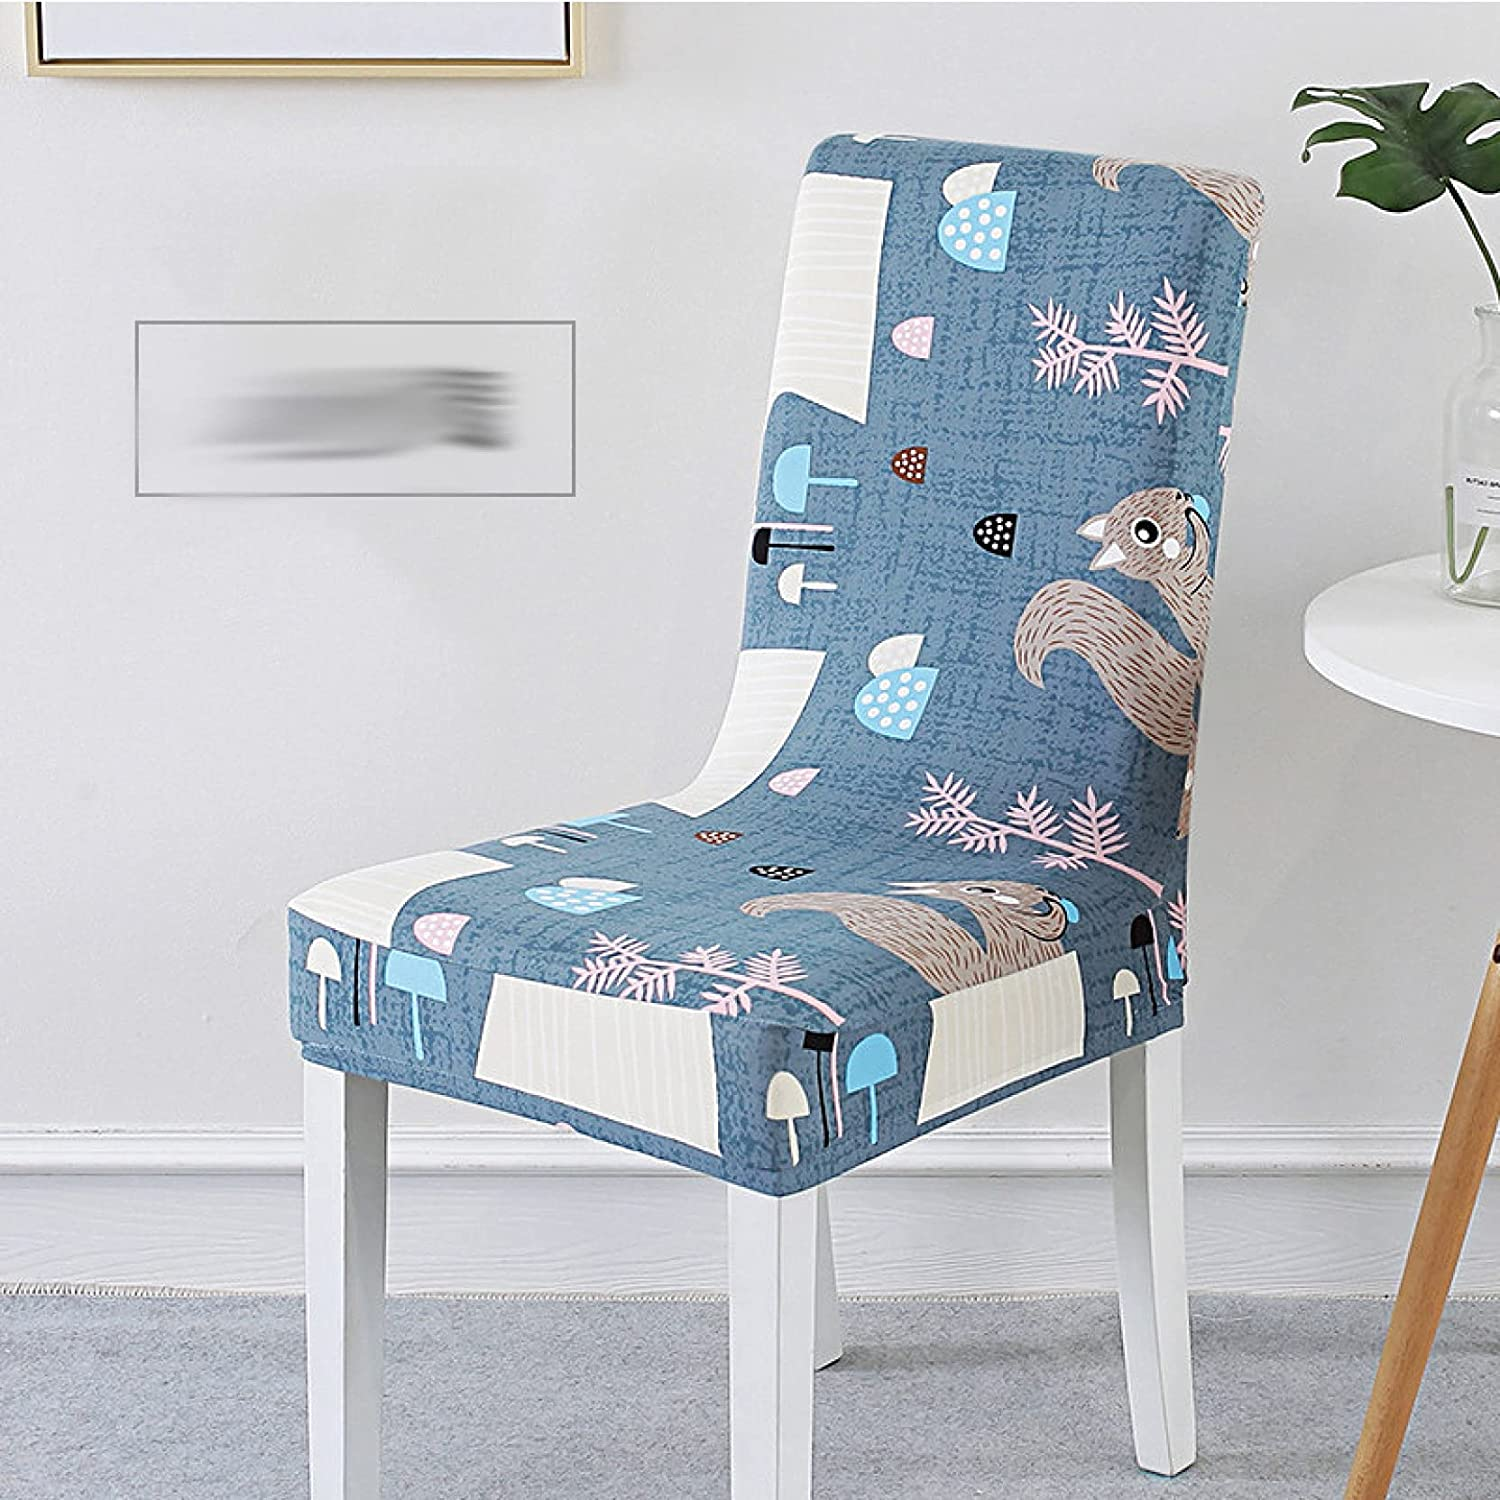 Set of Charlotte Mall 6 Stretch Dining Chair Cover B Max 40% OFF High Restaurant Decoration